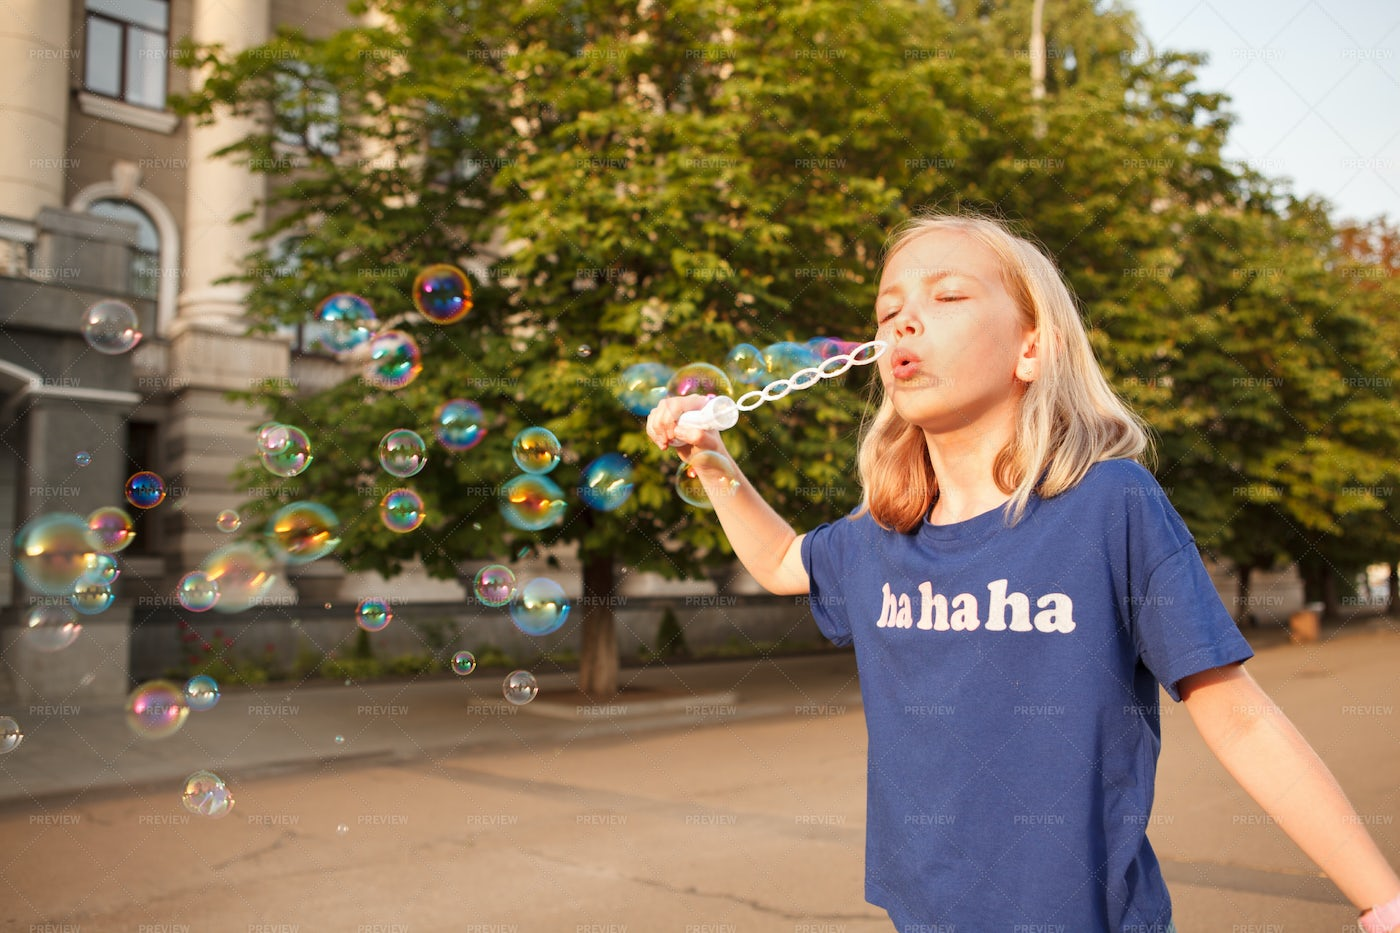 Young Girl Blowing Bubbles Outdoors: Stock Photos